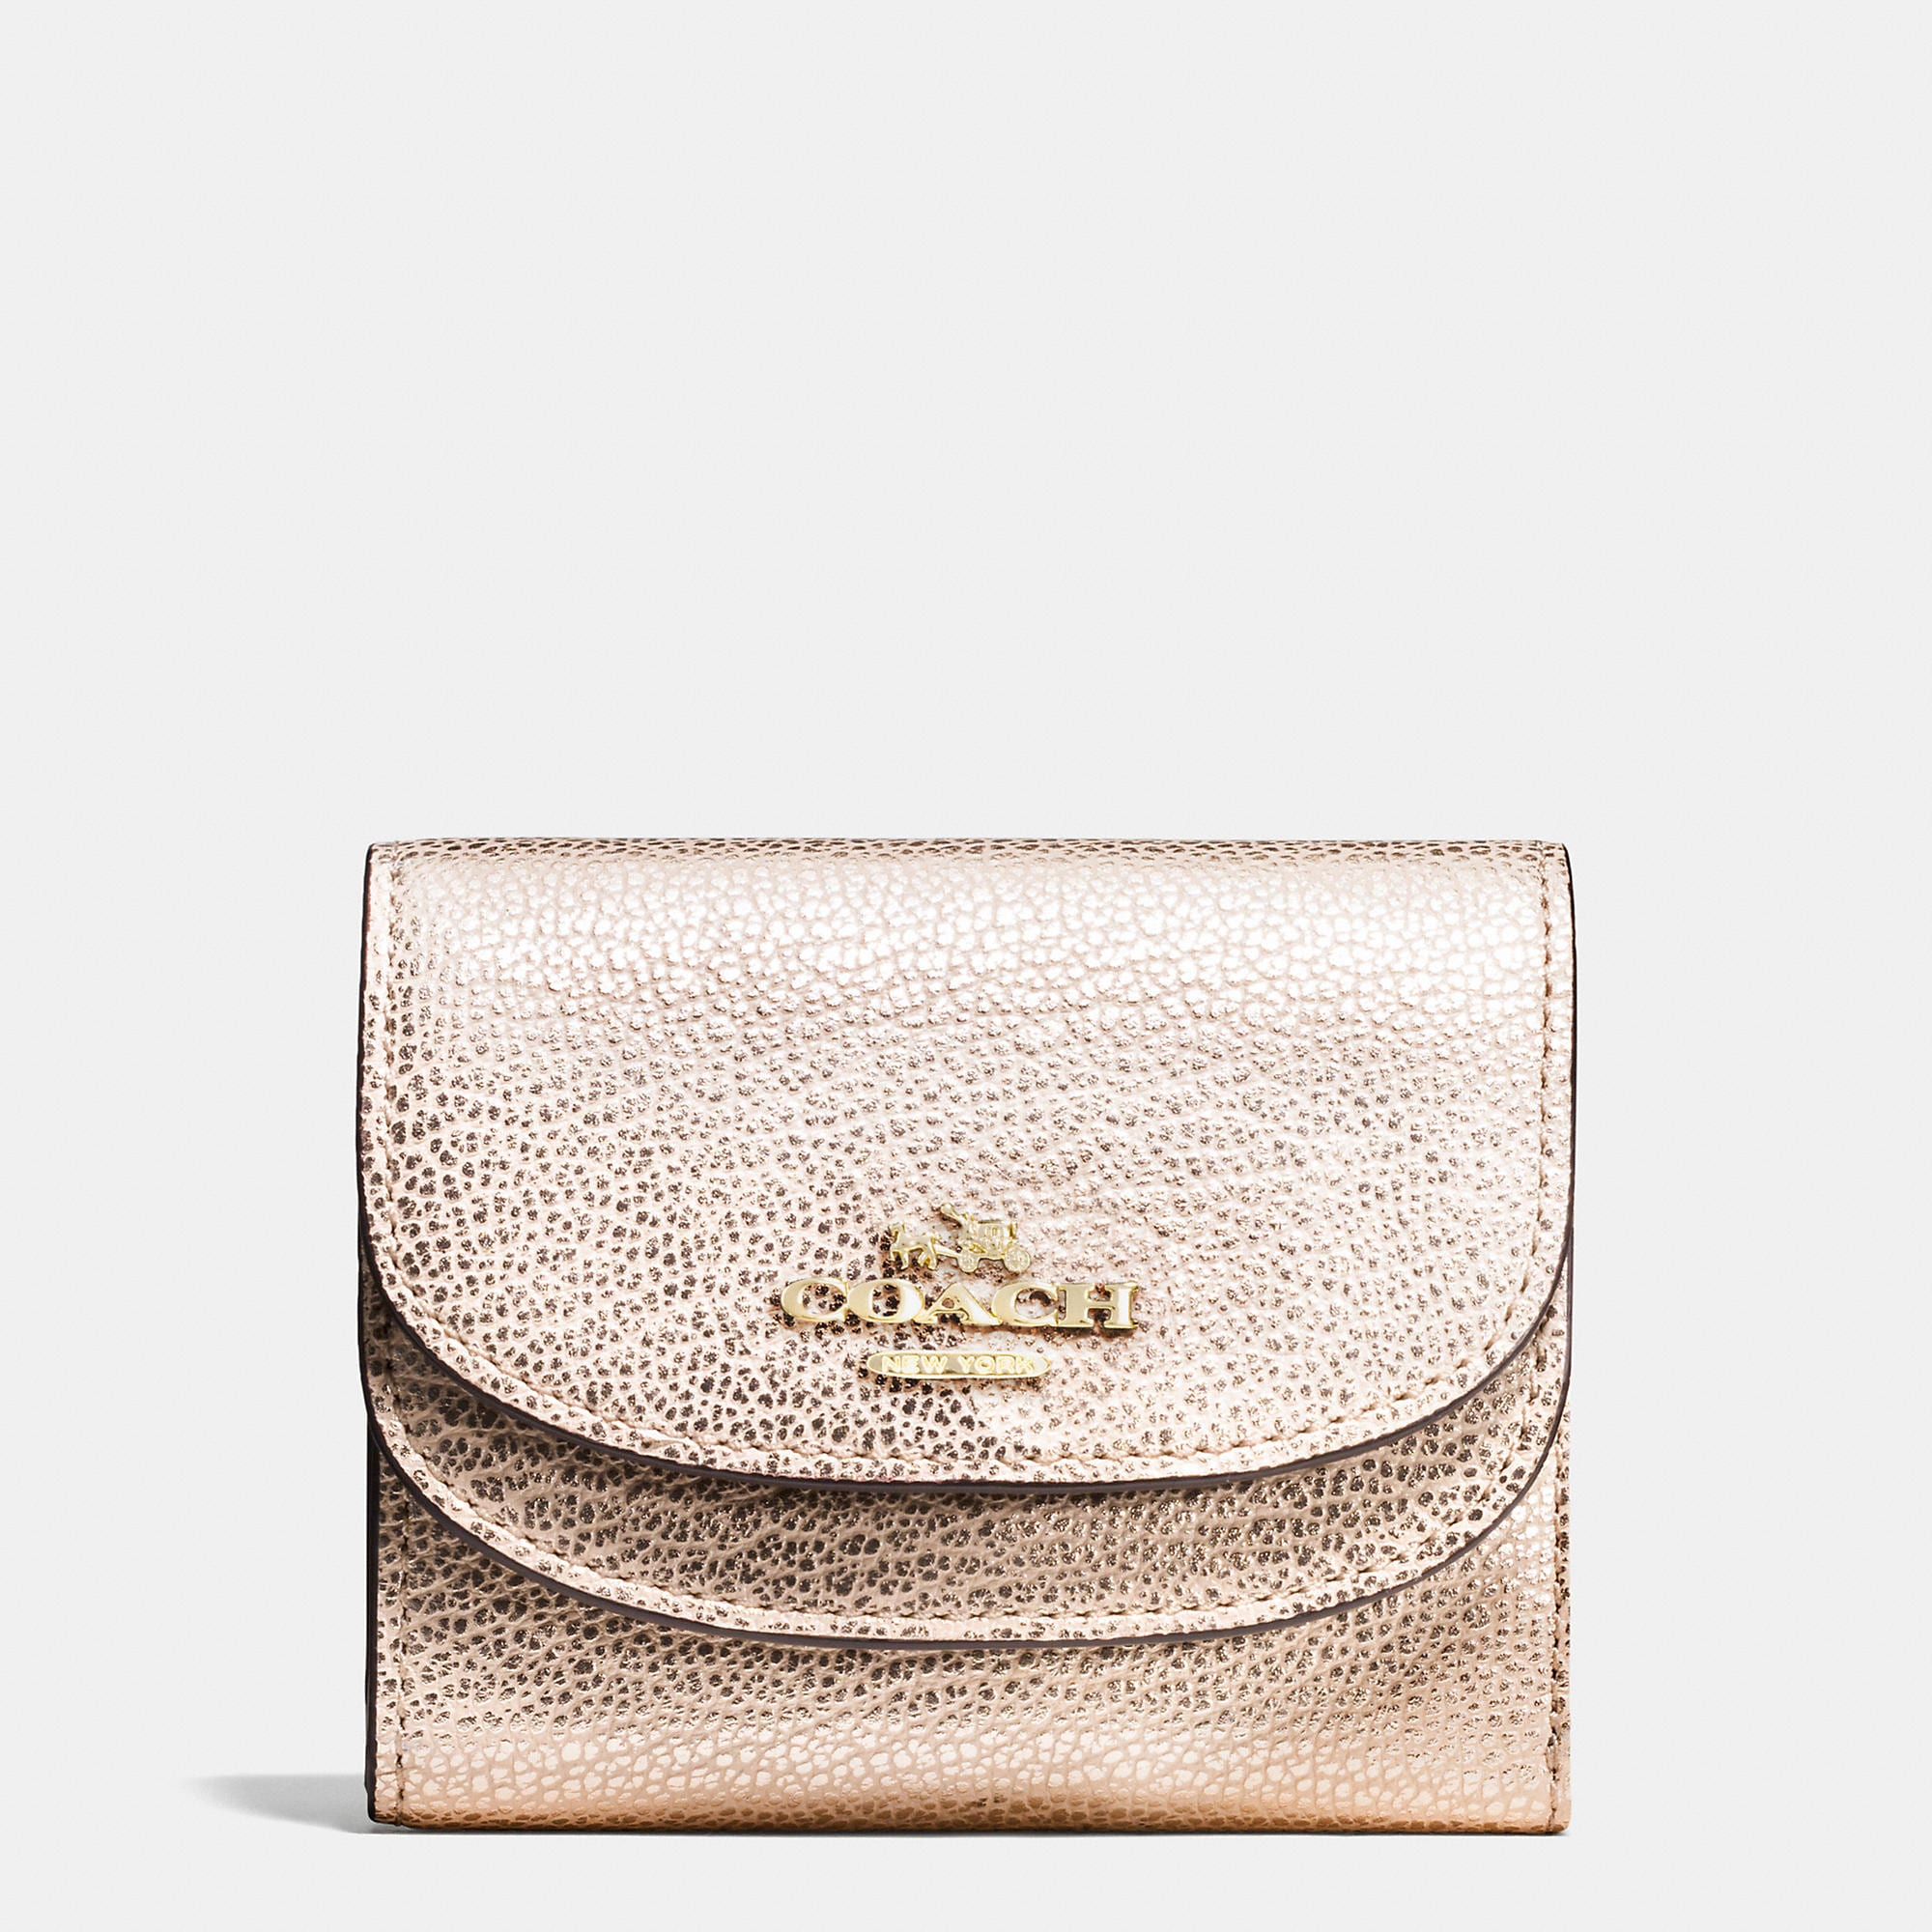 Coach Double Flap Small Wallet In Pebble Leather